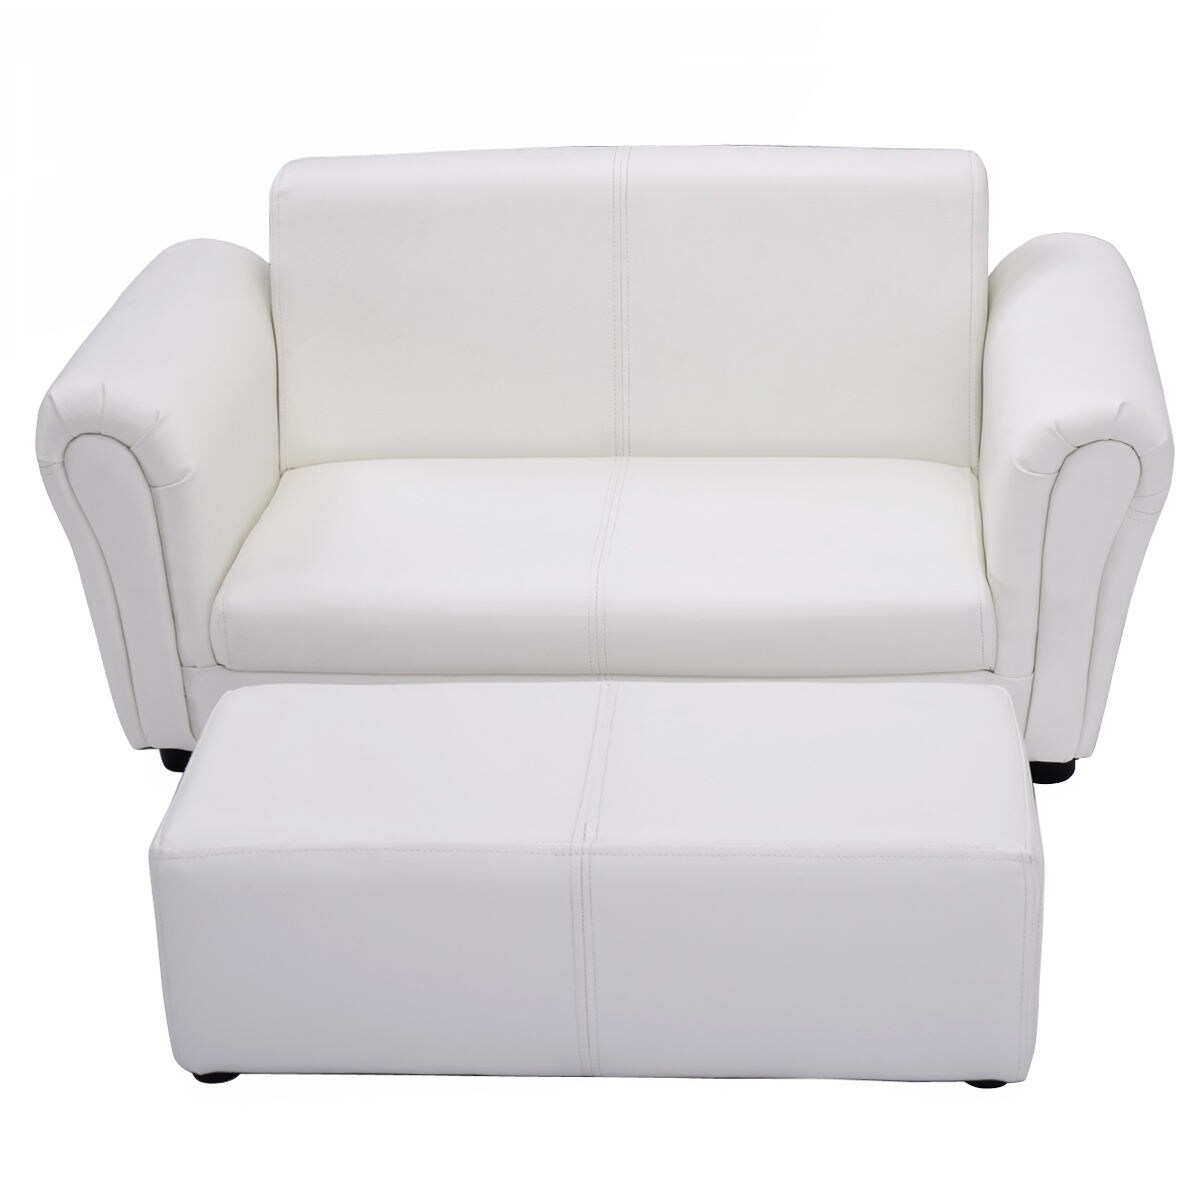 Costway White Kids Sofa Armrest Chair Couch Lounge Children Birthday Gift  W/ Ottoman   Free Shipping Today   Overstock   22217266